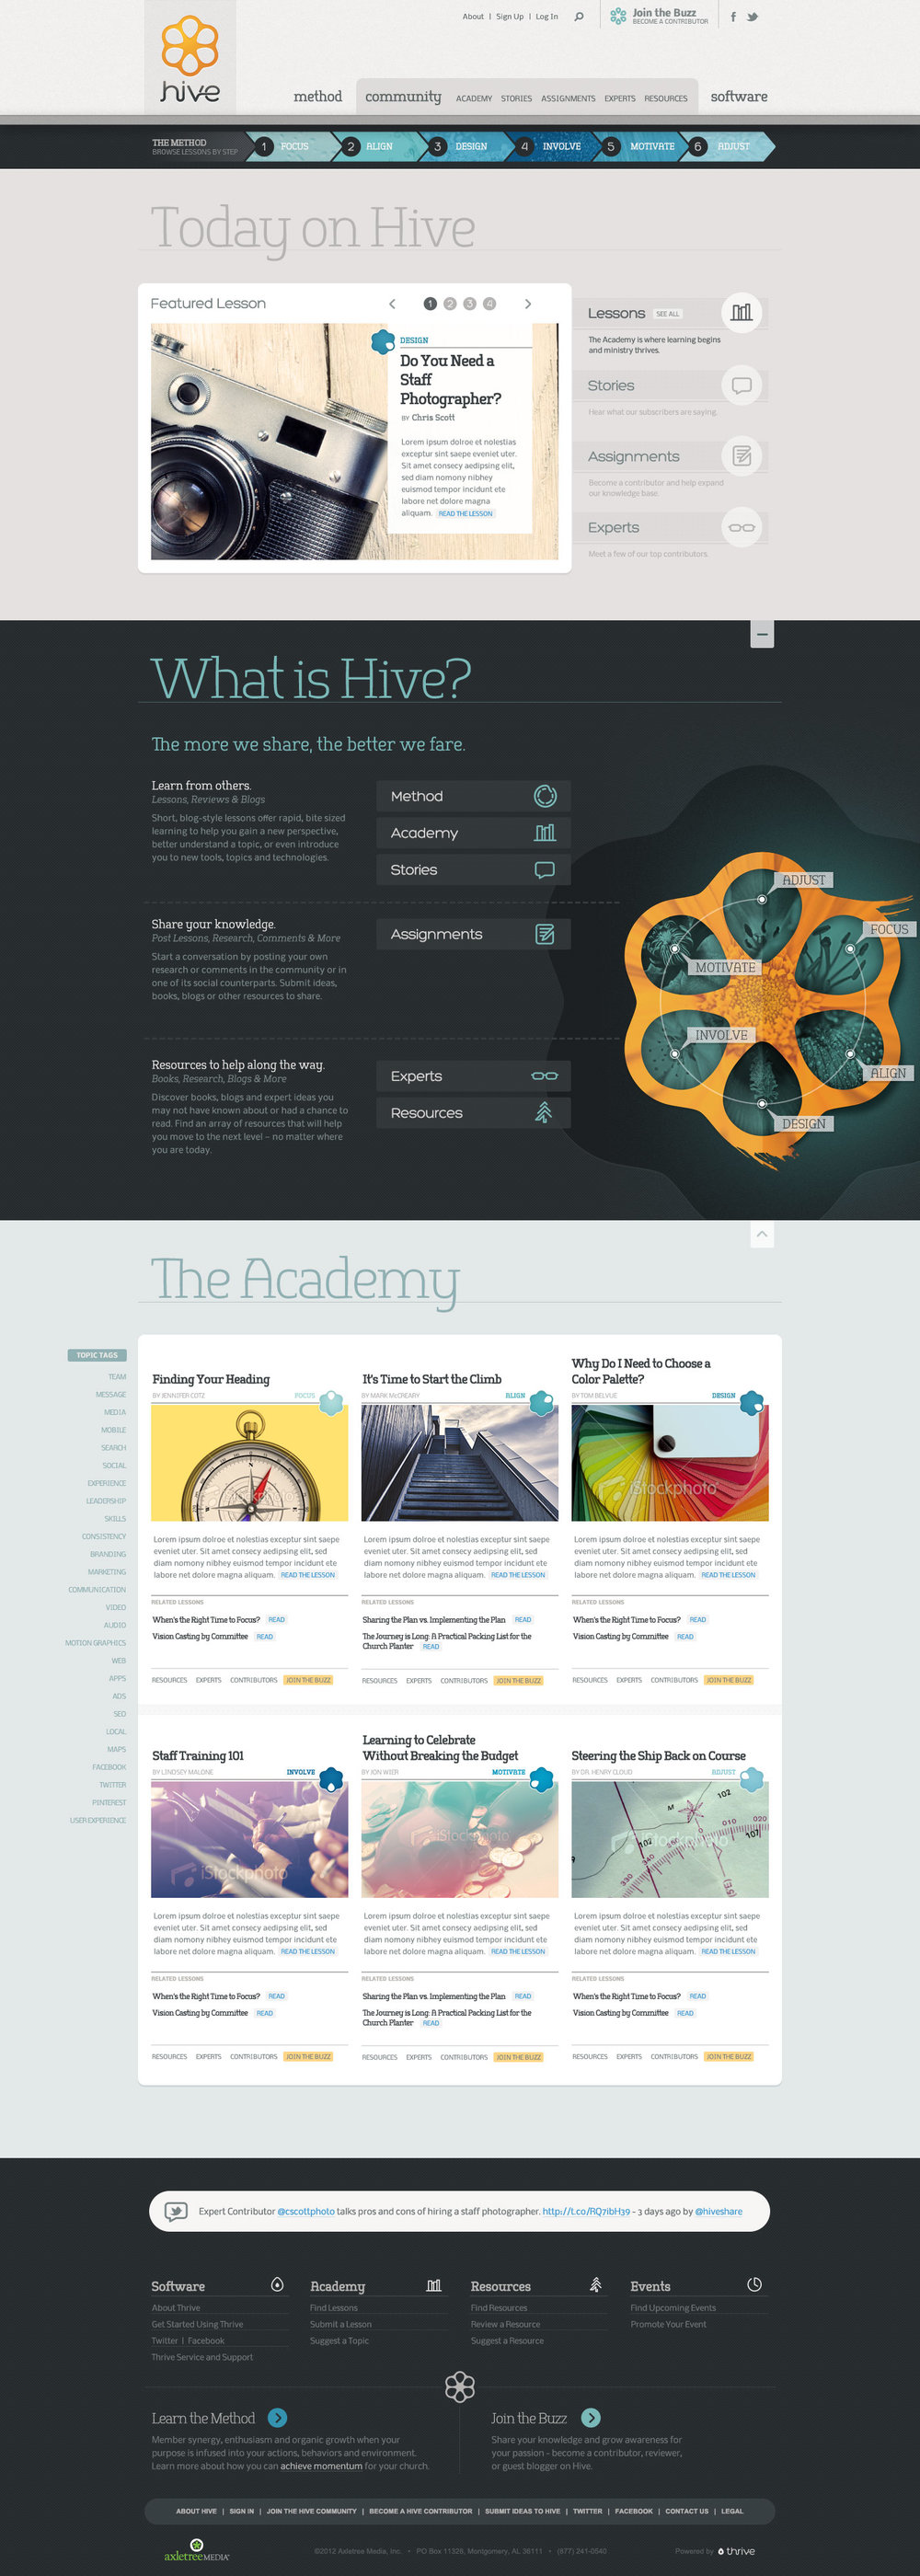 Hive website initial home page design